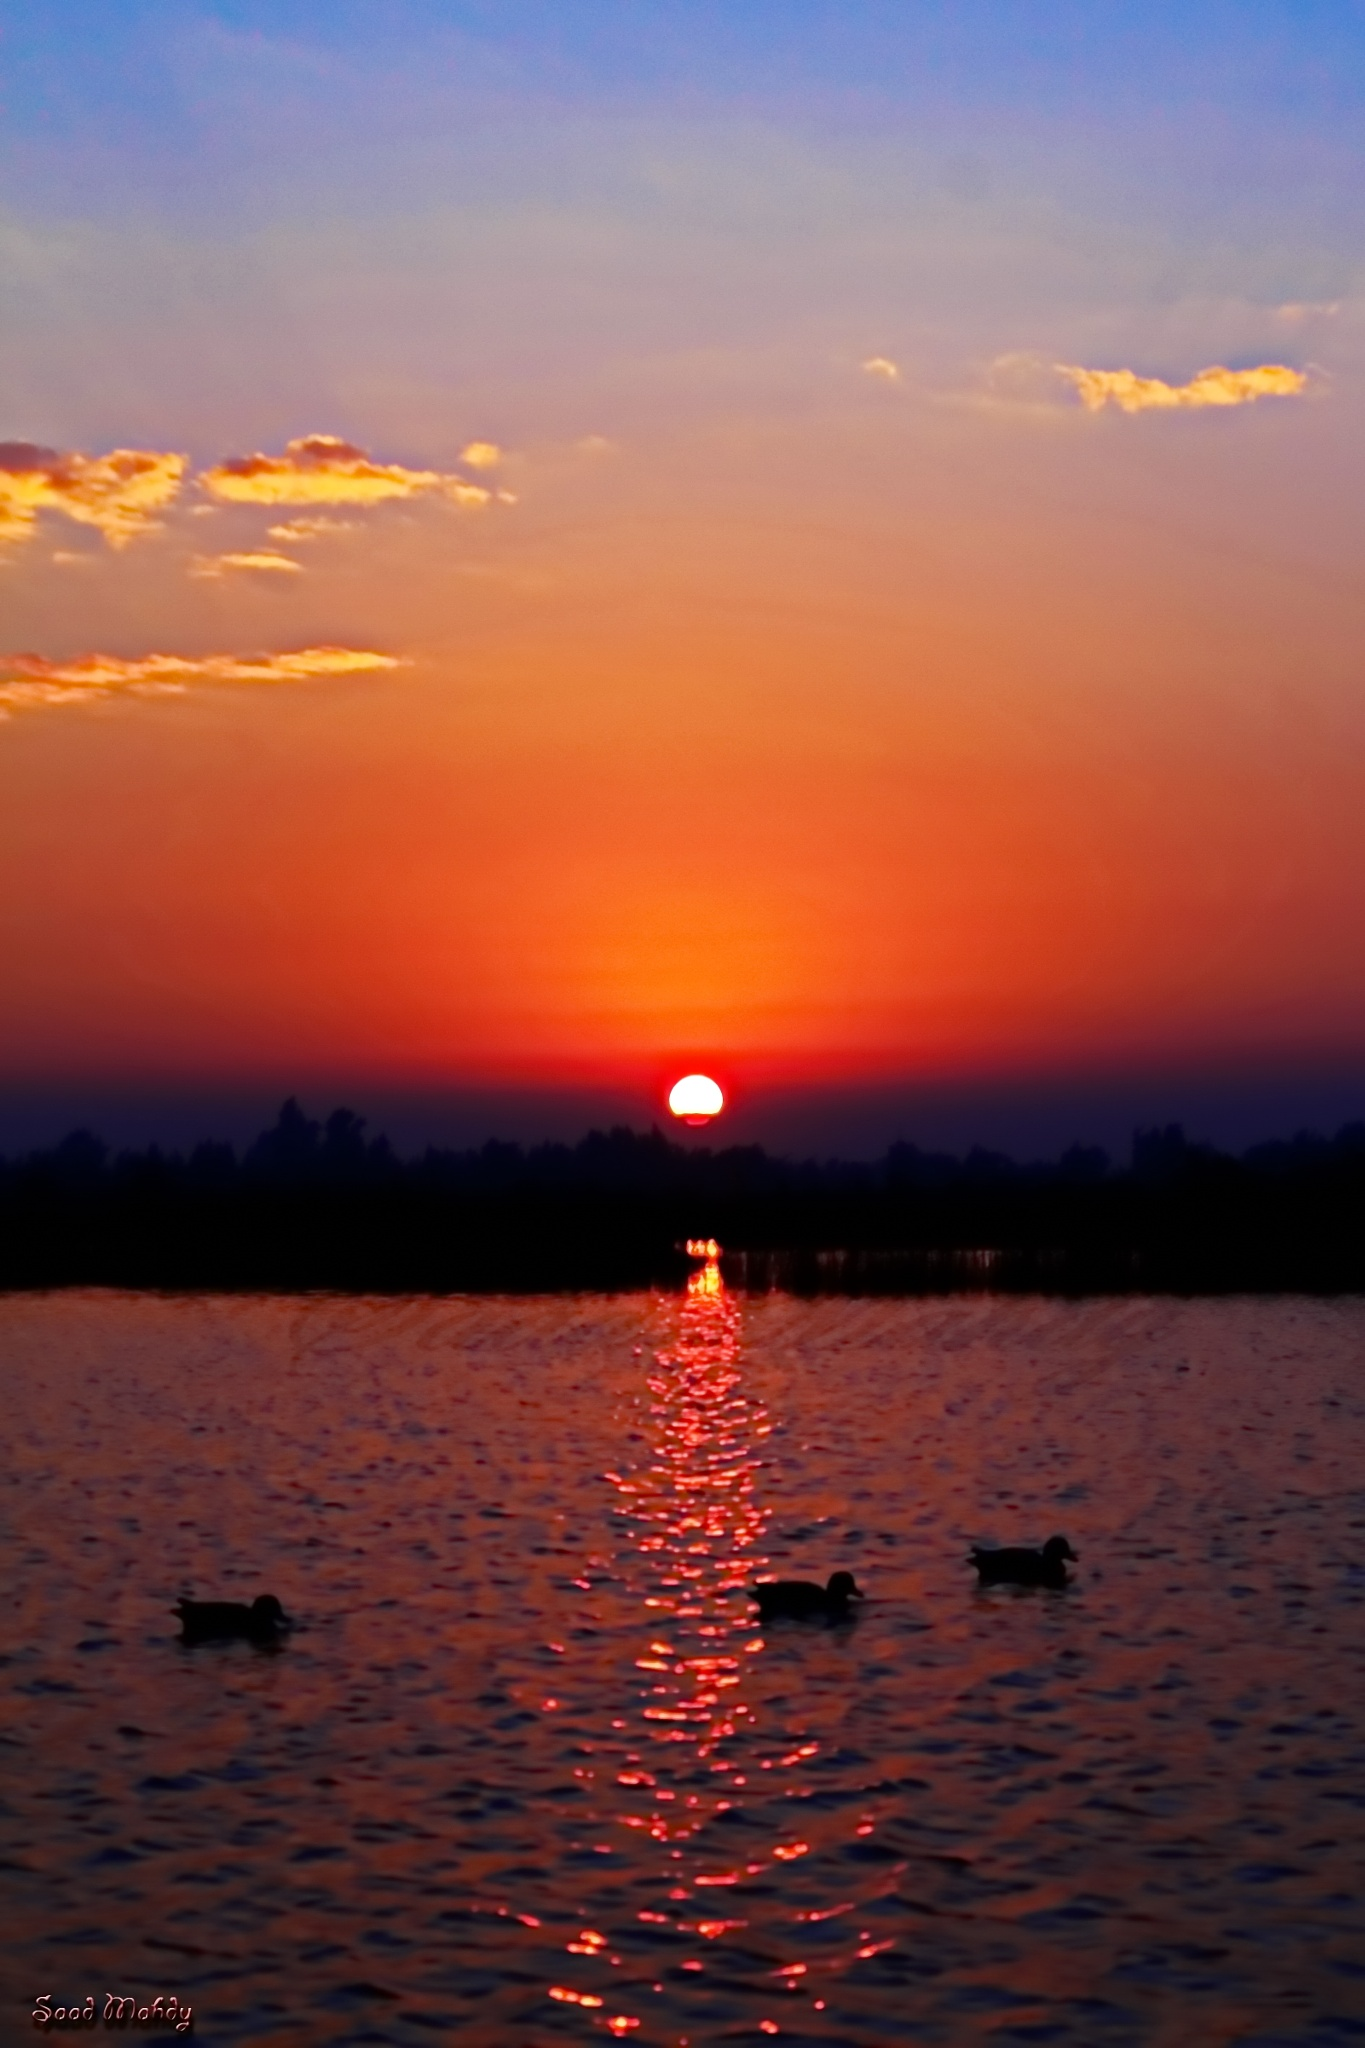 Sunrise in the lake by Saad Mahdy